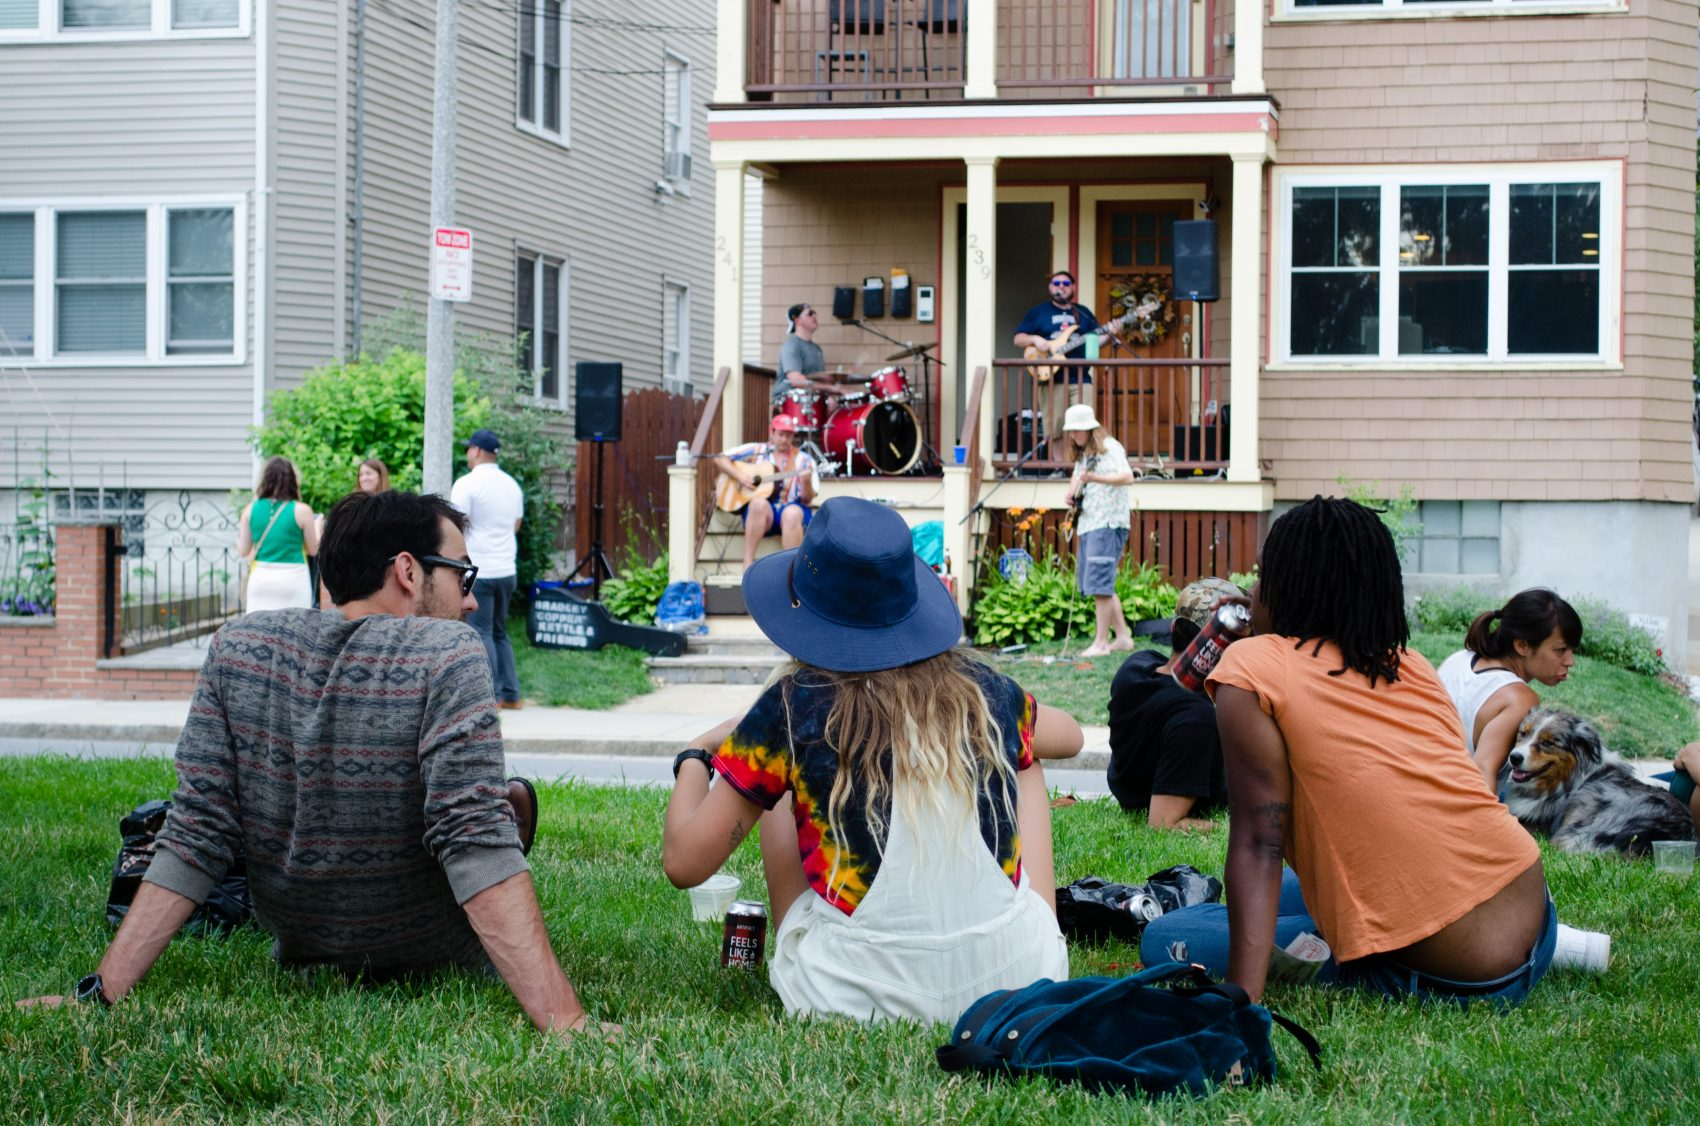 People watch musicians perform on on Lamartine Street at the JP Porchfest in 2017. (Elizabeth Gillis/WBUR)